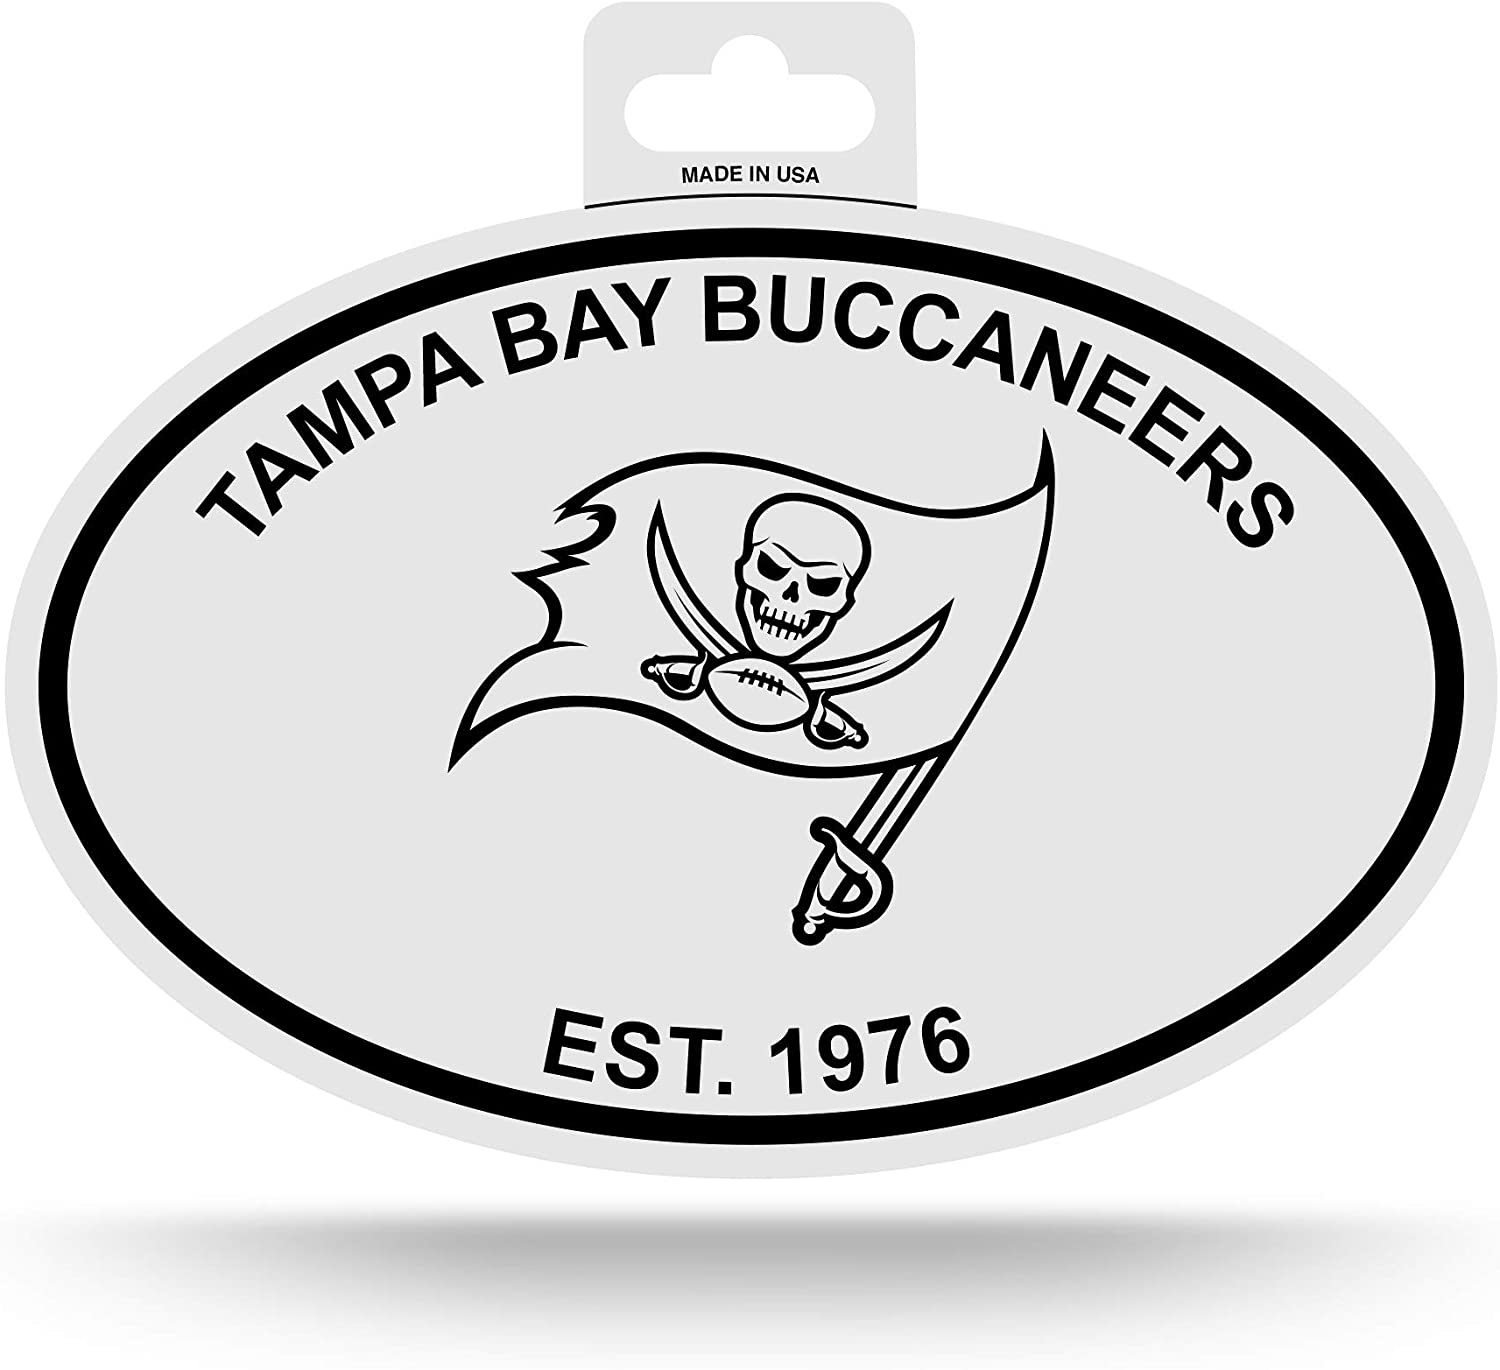 amazon com nfl rico industries black and white team logo oval sticker tampa bay buccaneers sports outdoors nfl rico industries black and white team logo oval sticker tampa bay buccaneers